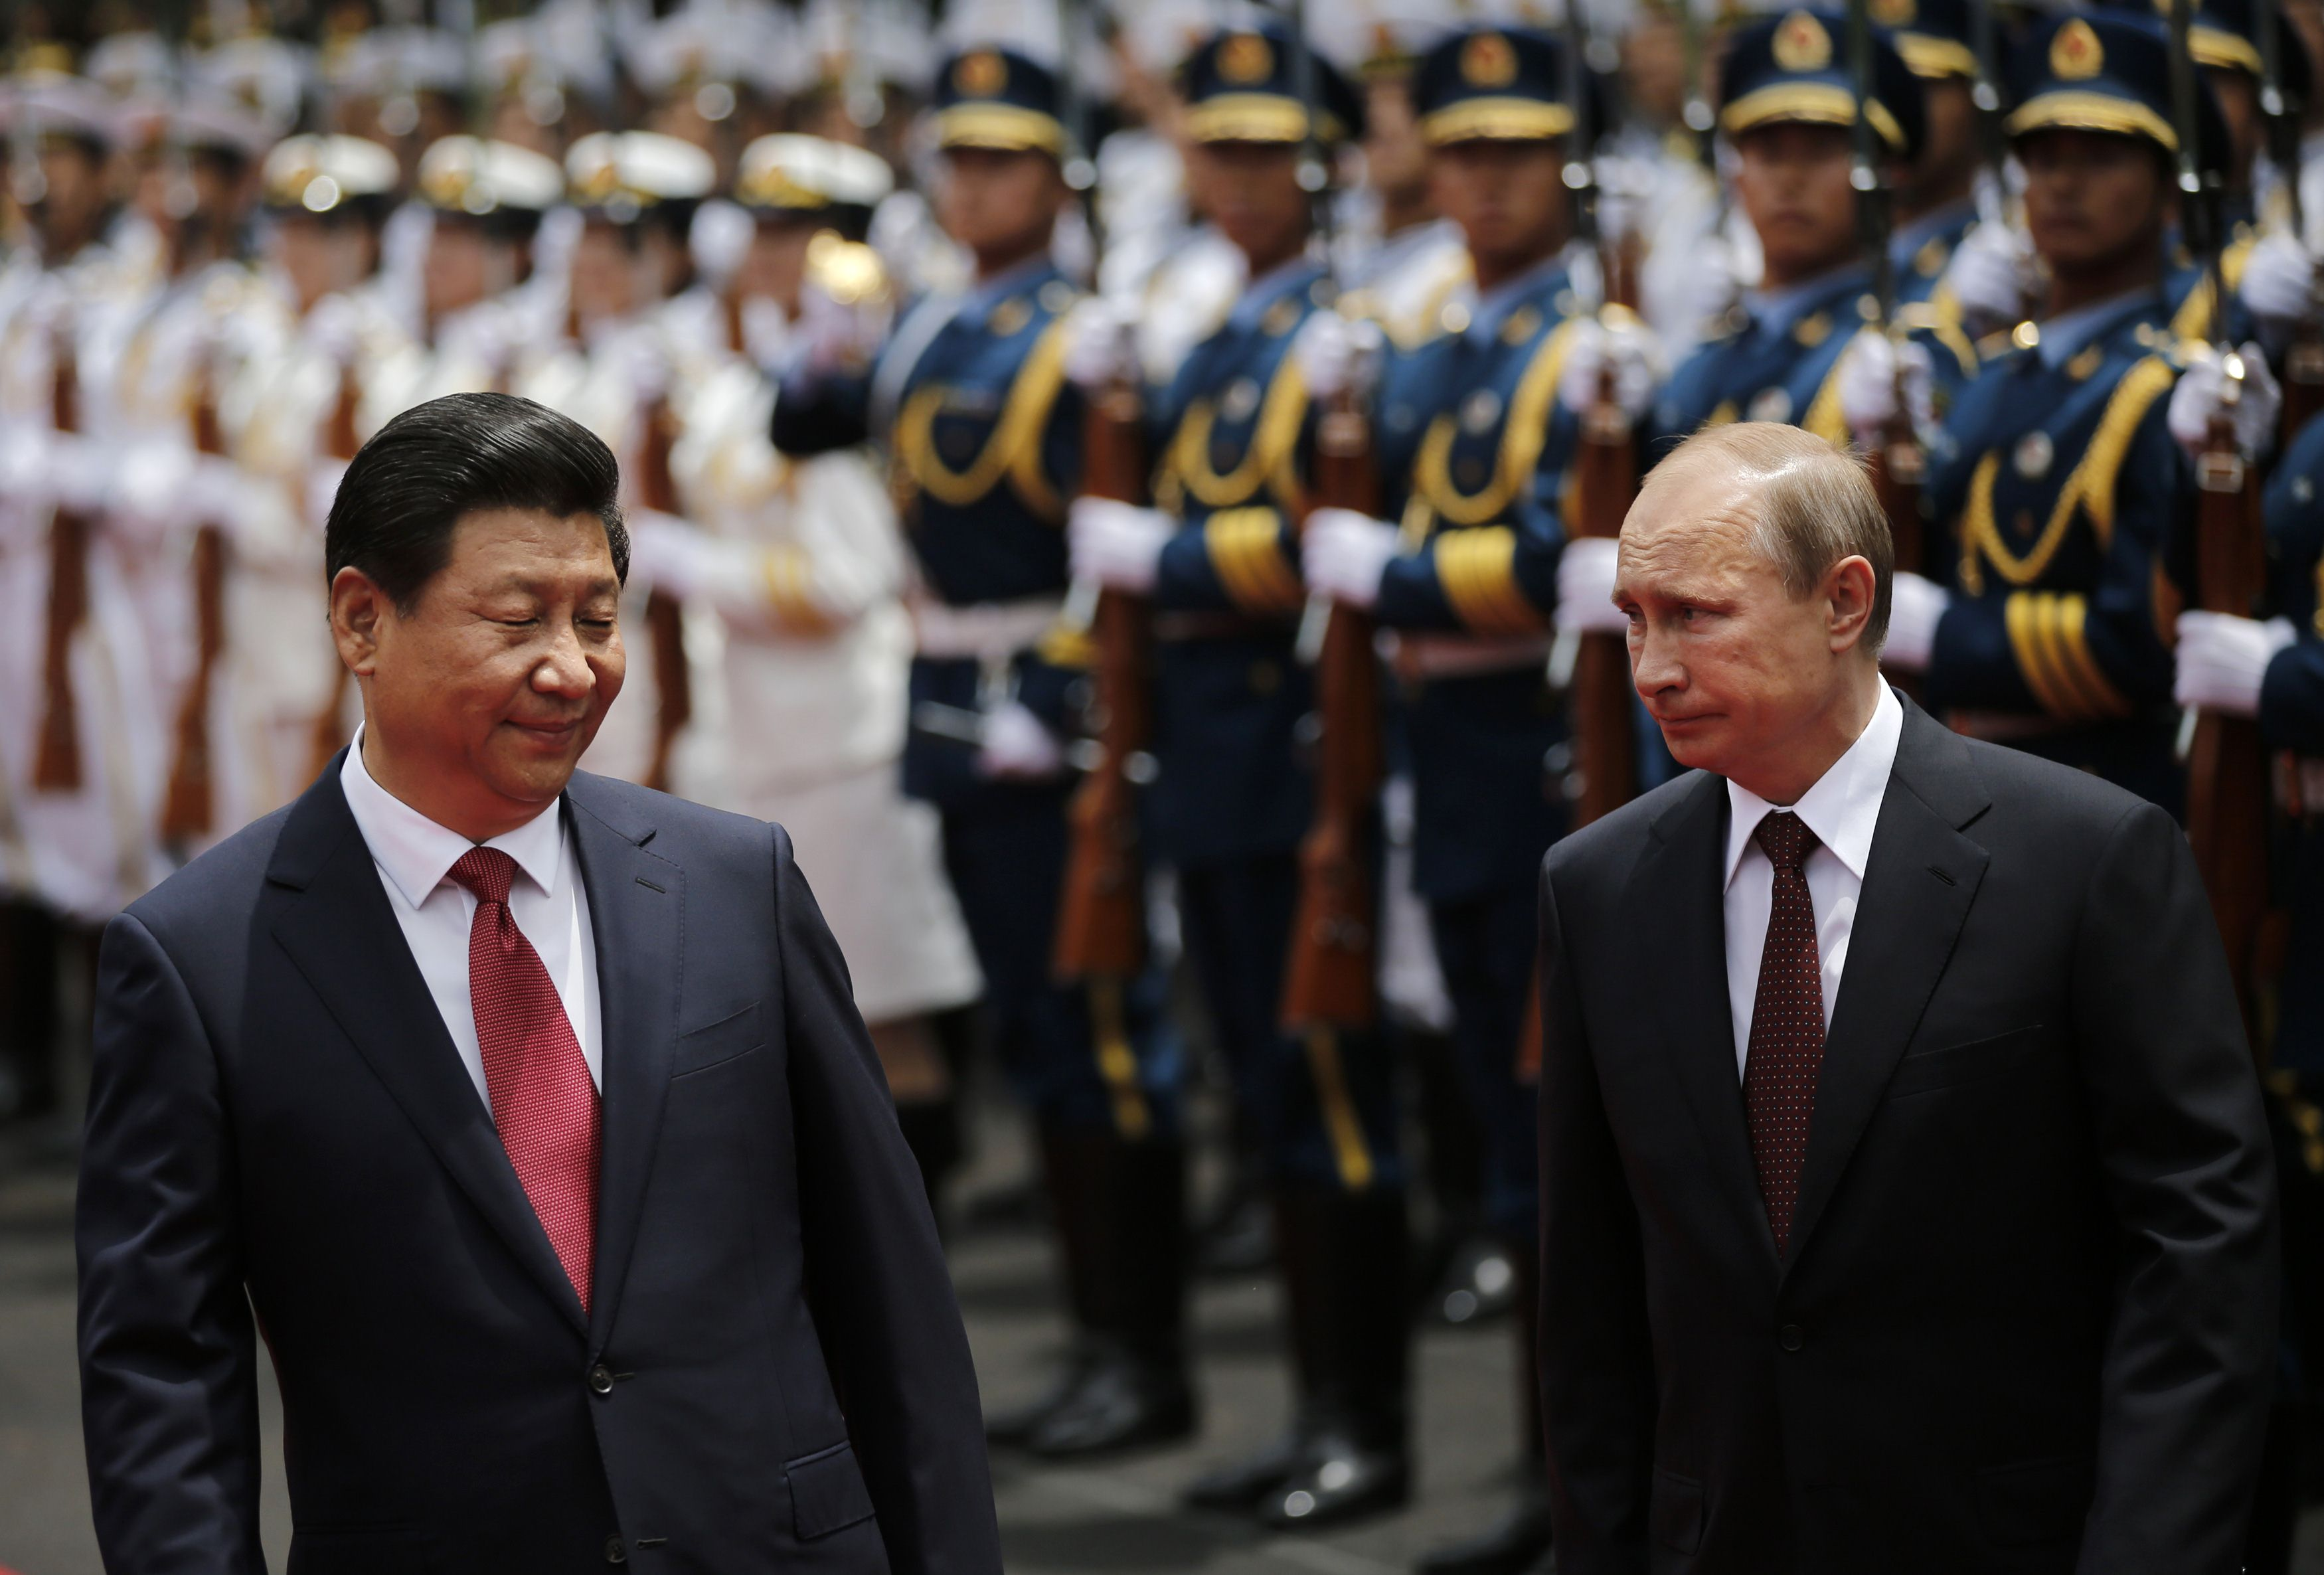 china and russia China and russia could jointly implement other railway projects in central asia, a region that jiang says offers great potential for china-russia cooperation rather than competition these suggestions mirror the tone of the official announcement on pairing the eurasian economic union and the silk road economic belt, which was signed at the.